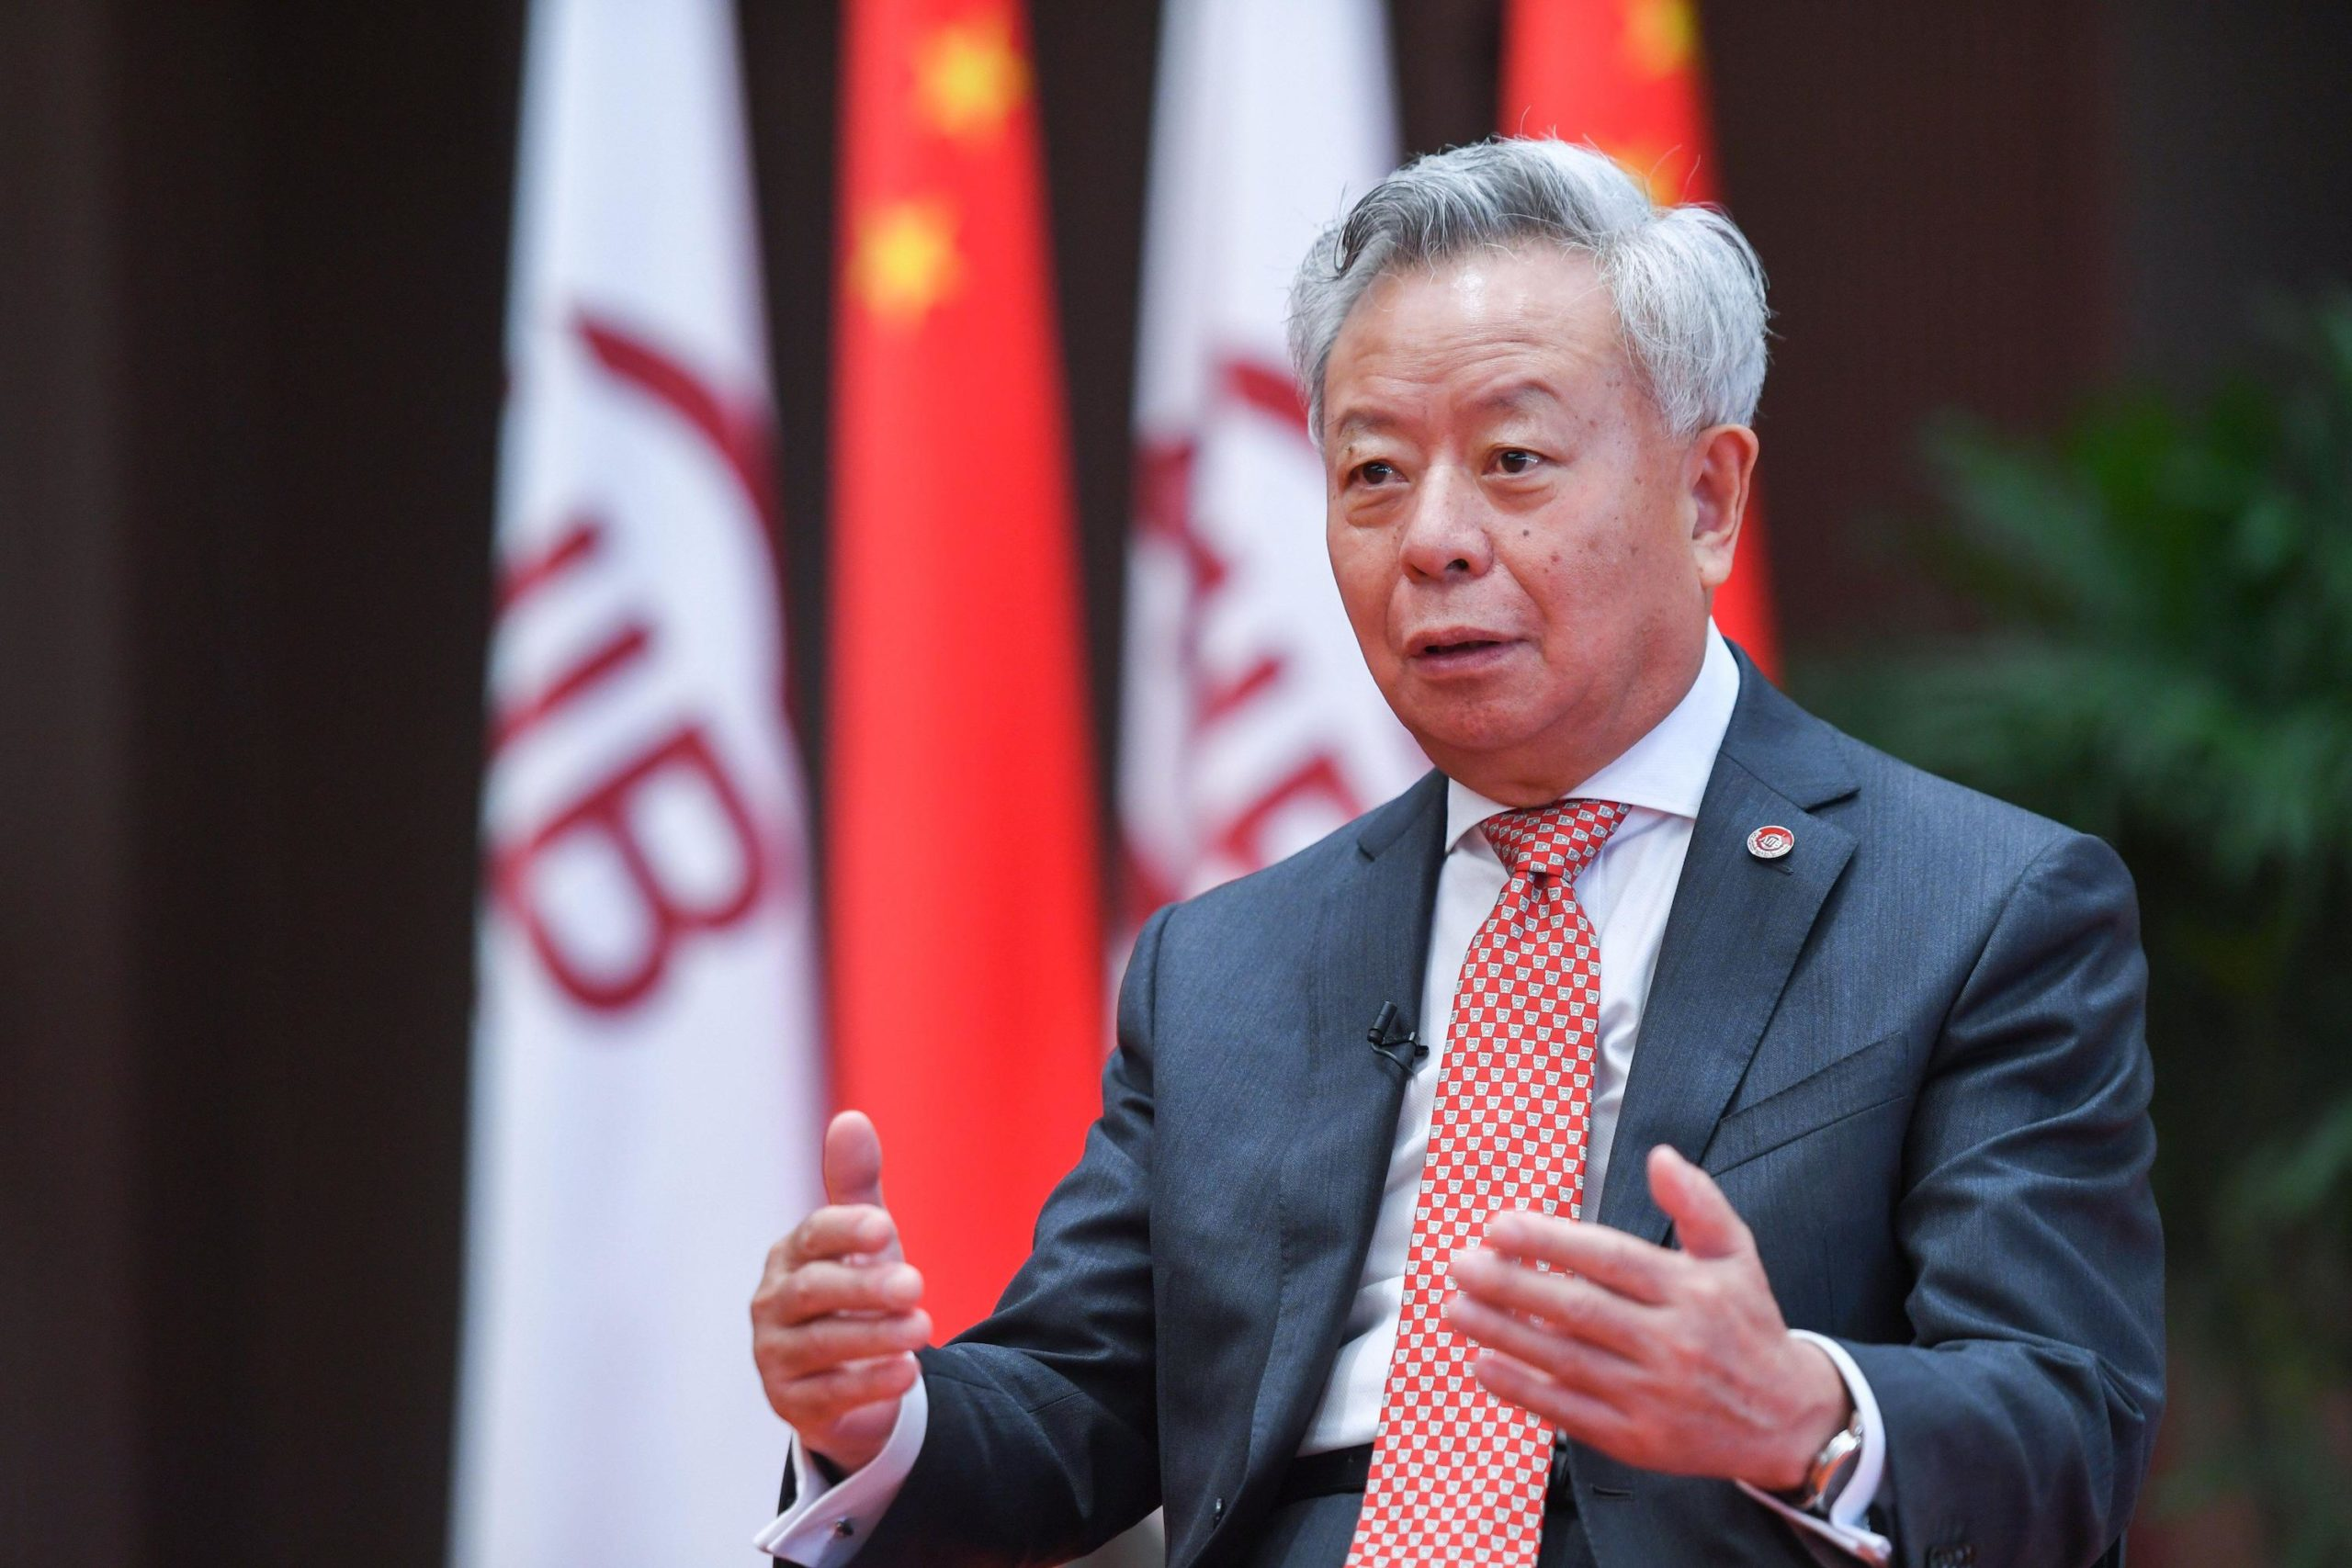 """In September, Jin Liqun, the president of the AIIB, said: """"I am not going to finance any coal-fired power plants."""" (Image: Alamy)"""